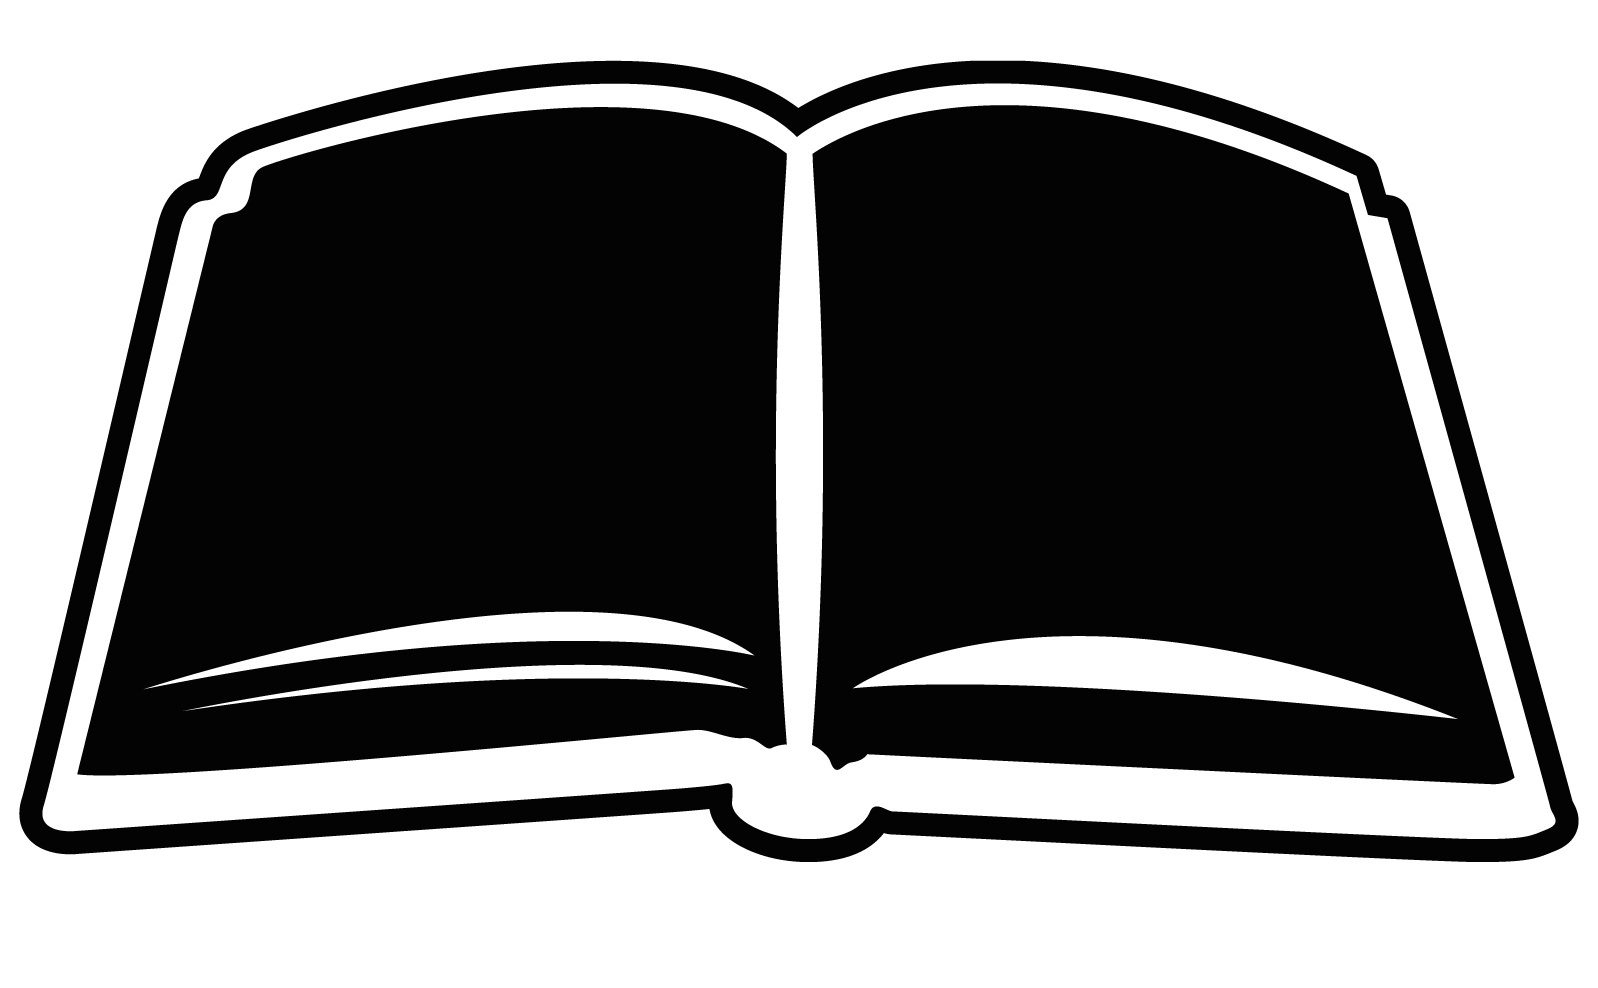 Picture Of A Open Book - ClipArt Best